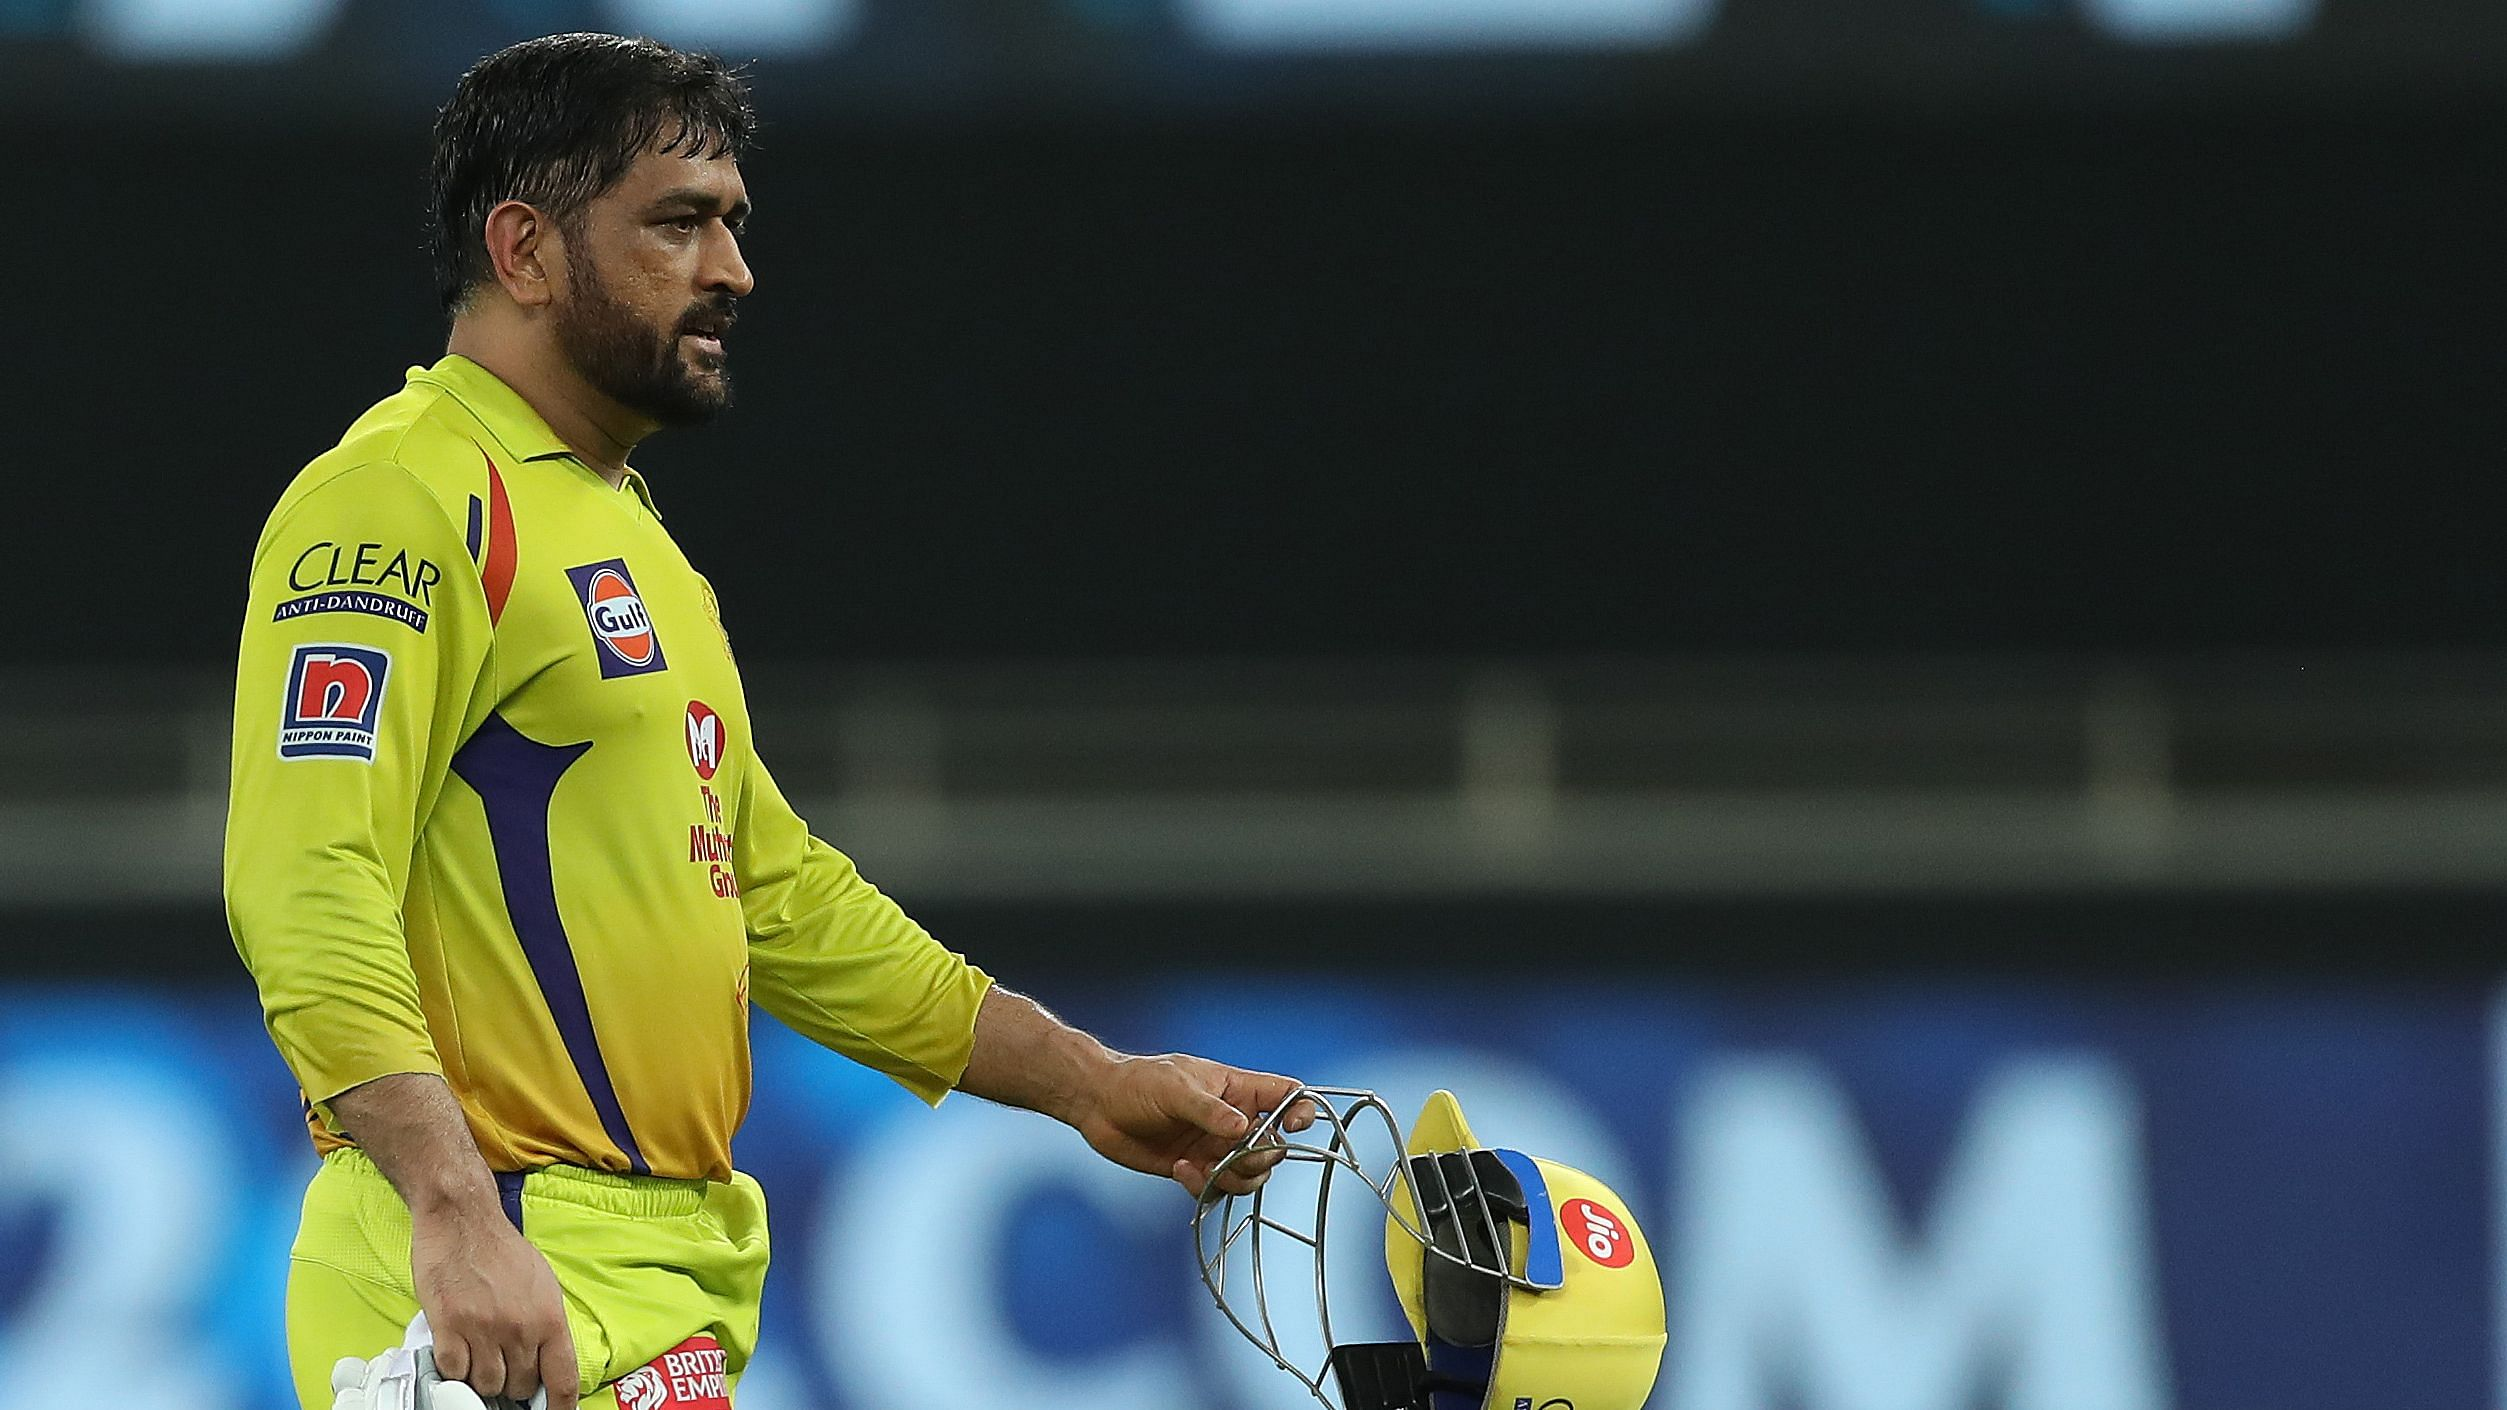 IPL 2020: This ex-Indian cricketer wants Chennai Super Kings to release MS Dhoni